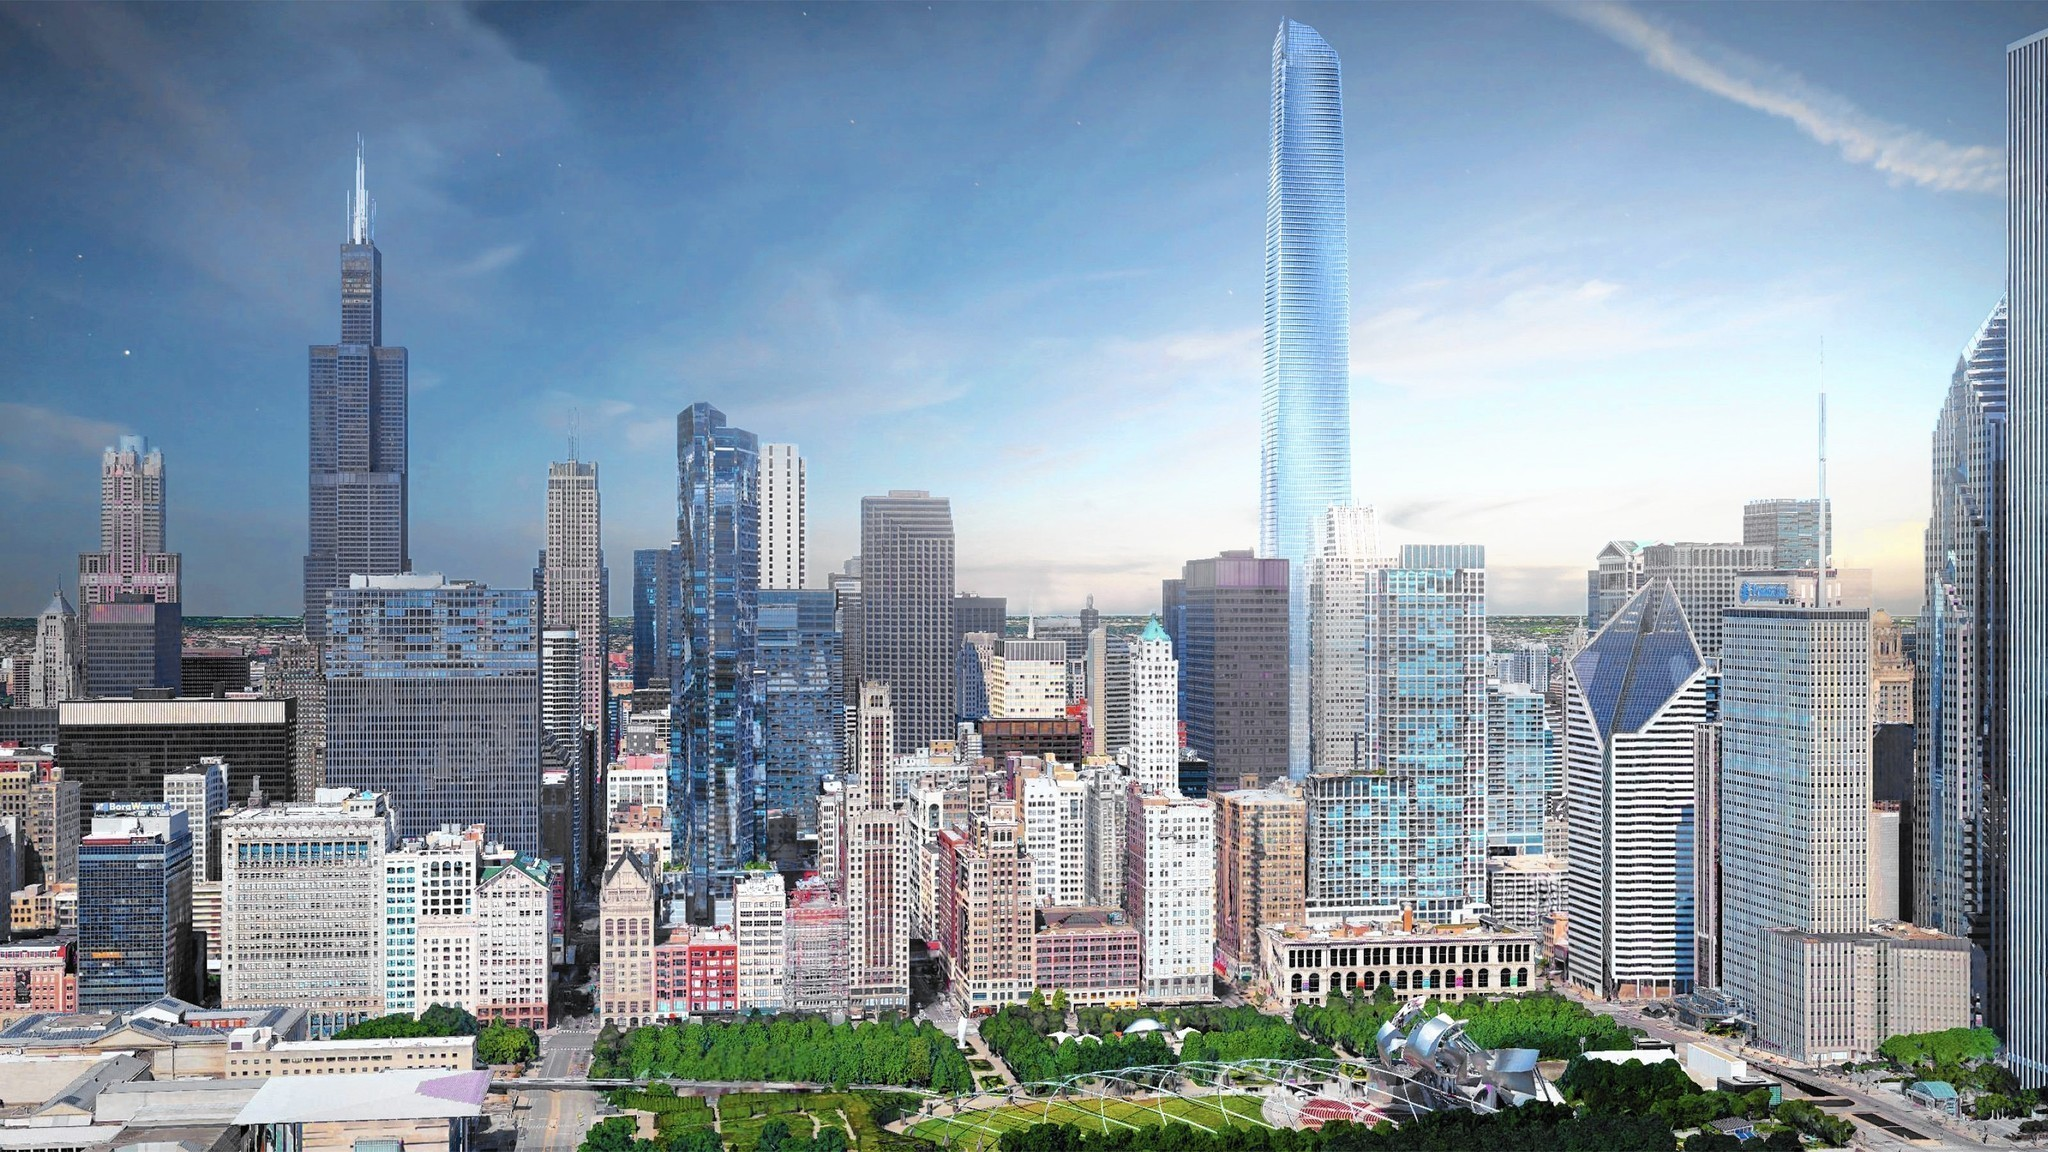 Plan calls for replacing Thompson Center with new tower ... Bruce Willis Tower